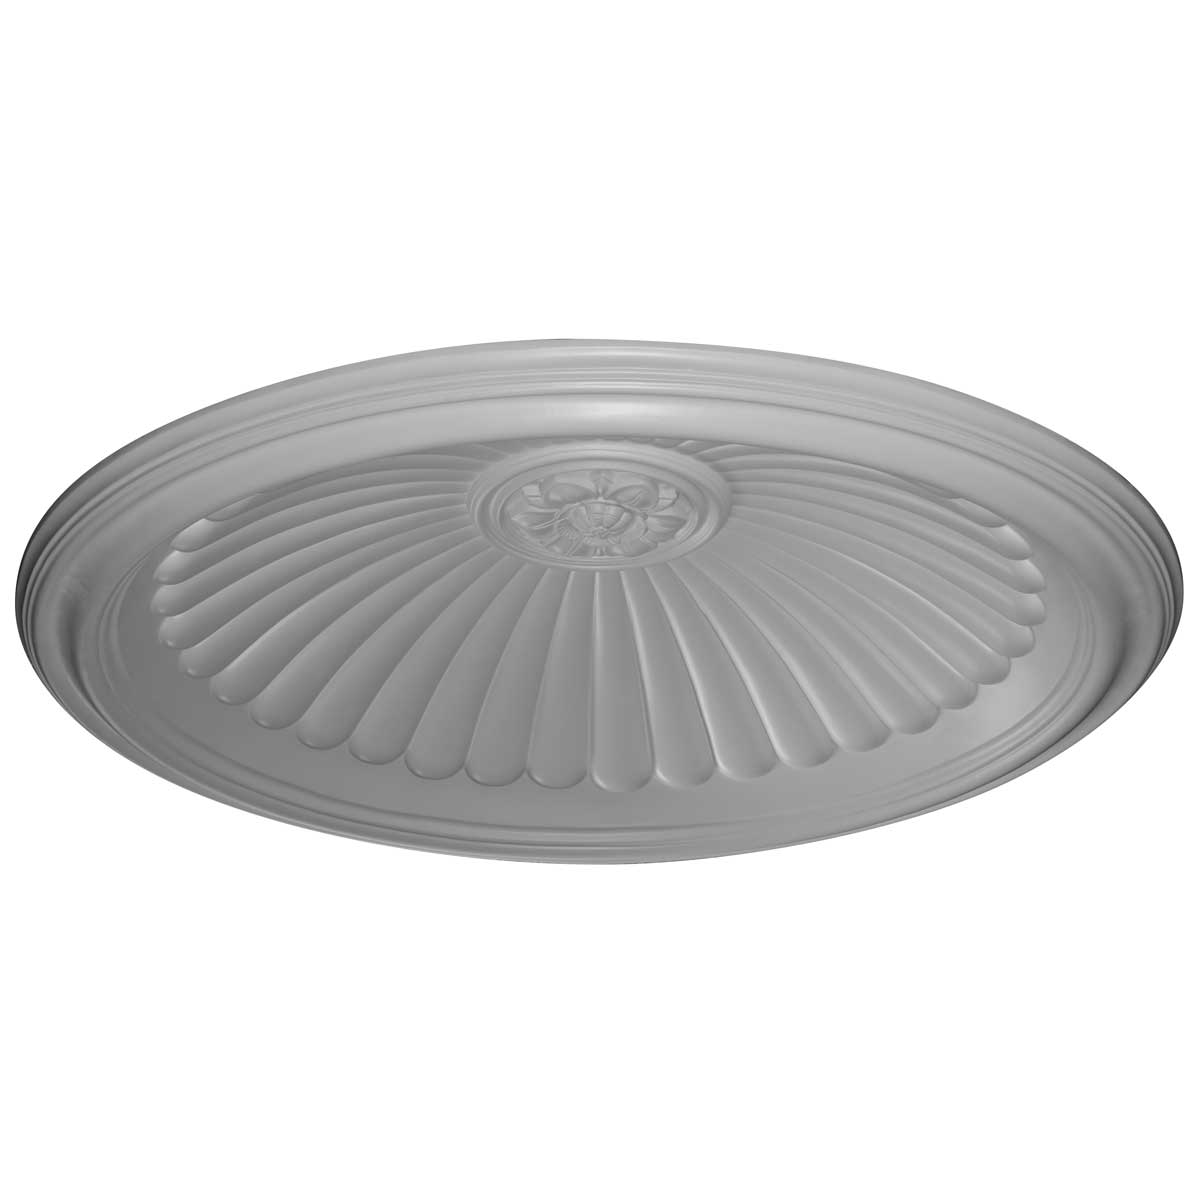 """DOME44ED 44-1/8""""OD x 37""""ID x 6-7/8""""D,Edwards Ceiling Dome,3-1/2""""W Trim (36-1/2""""Diameter x 8-7/8""""D Rough Opening)"""